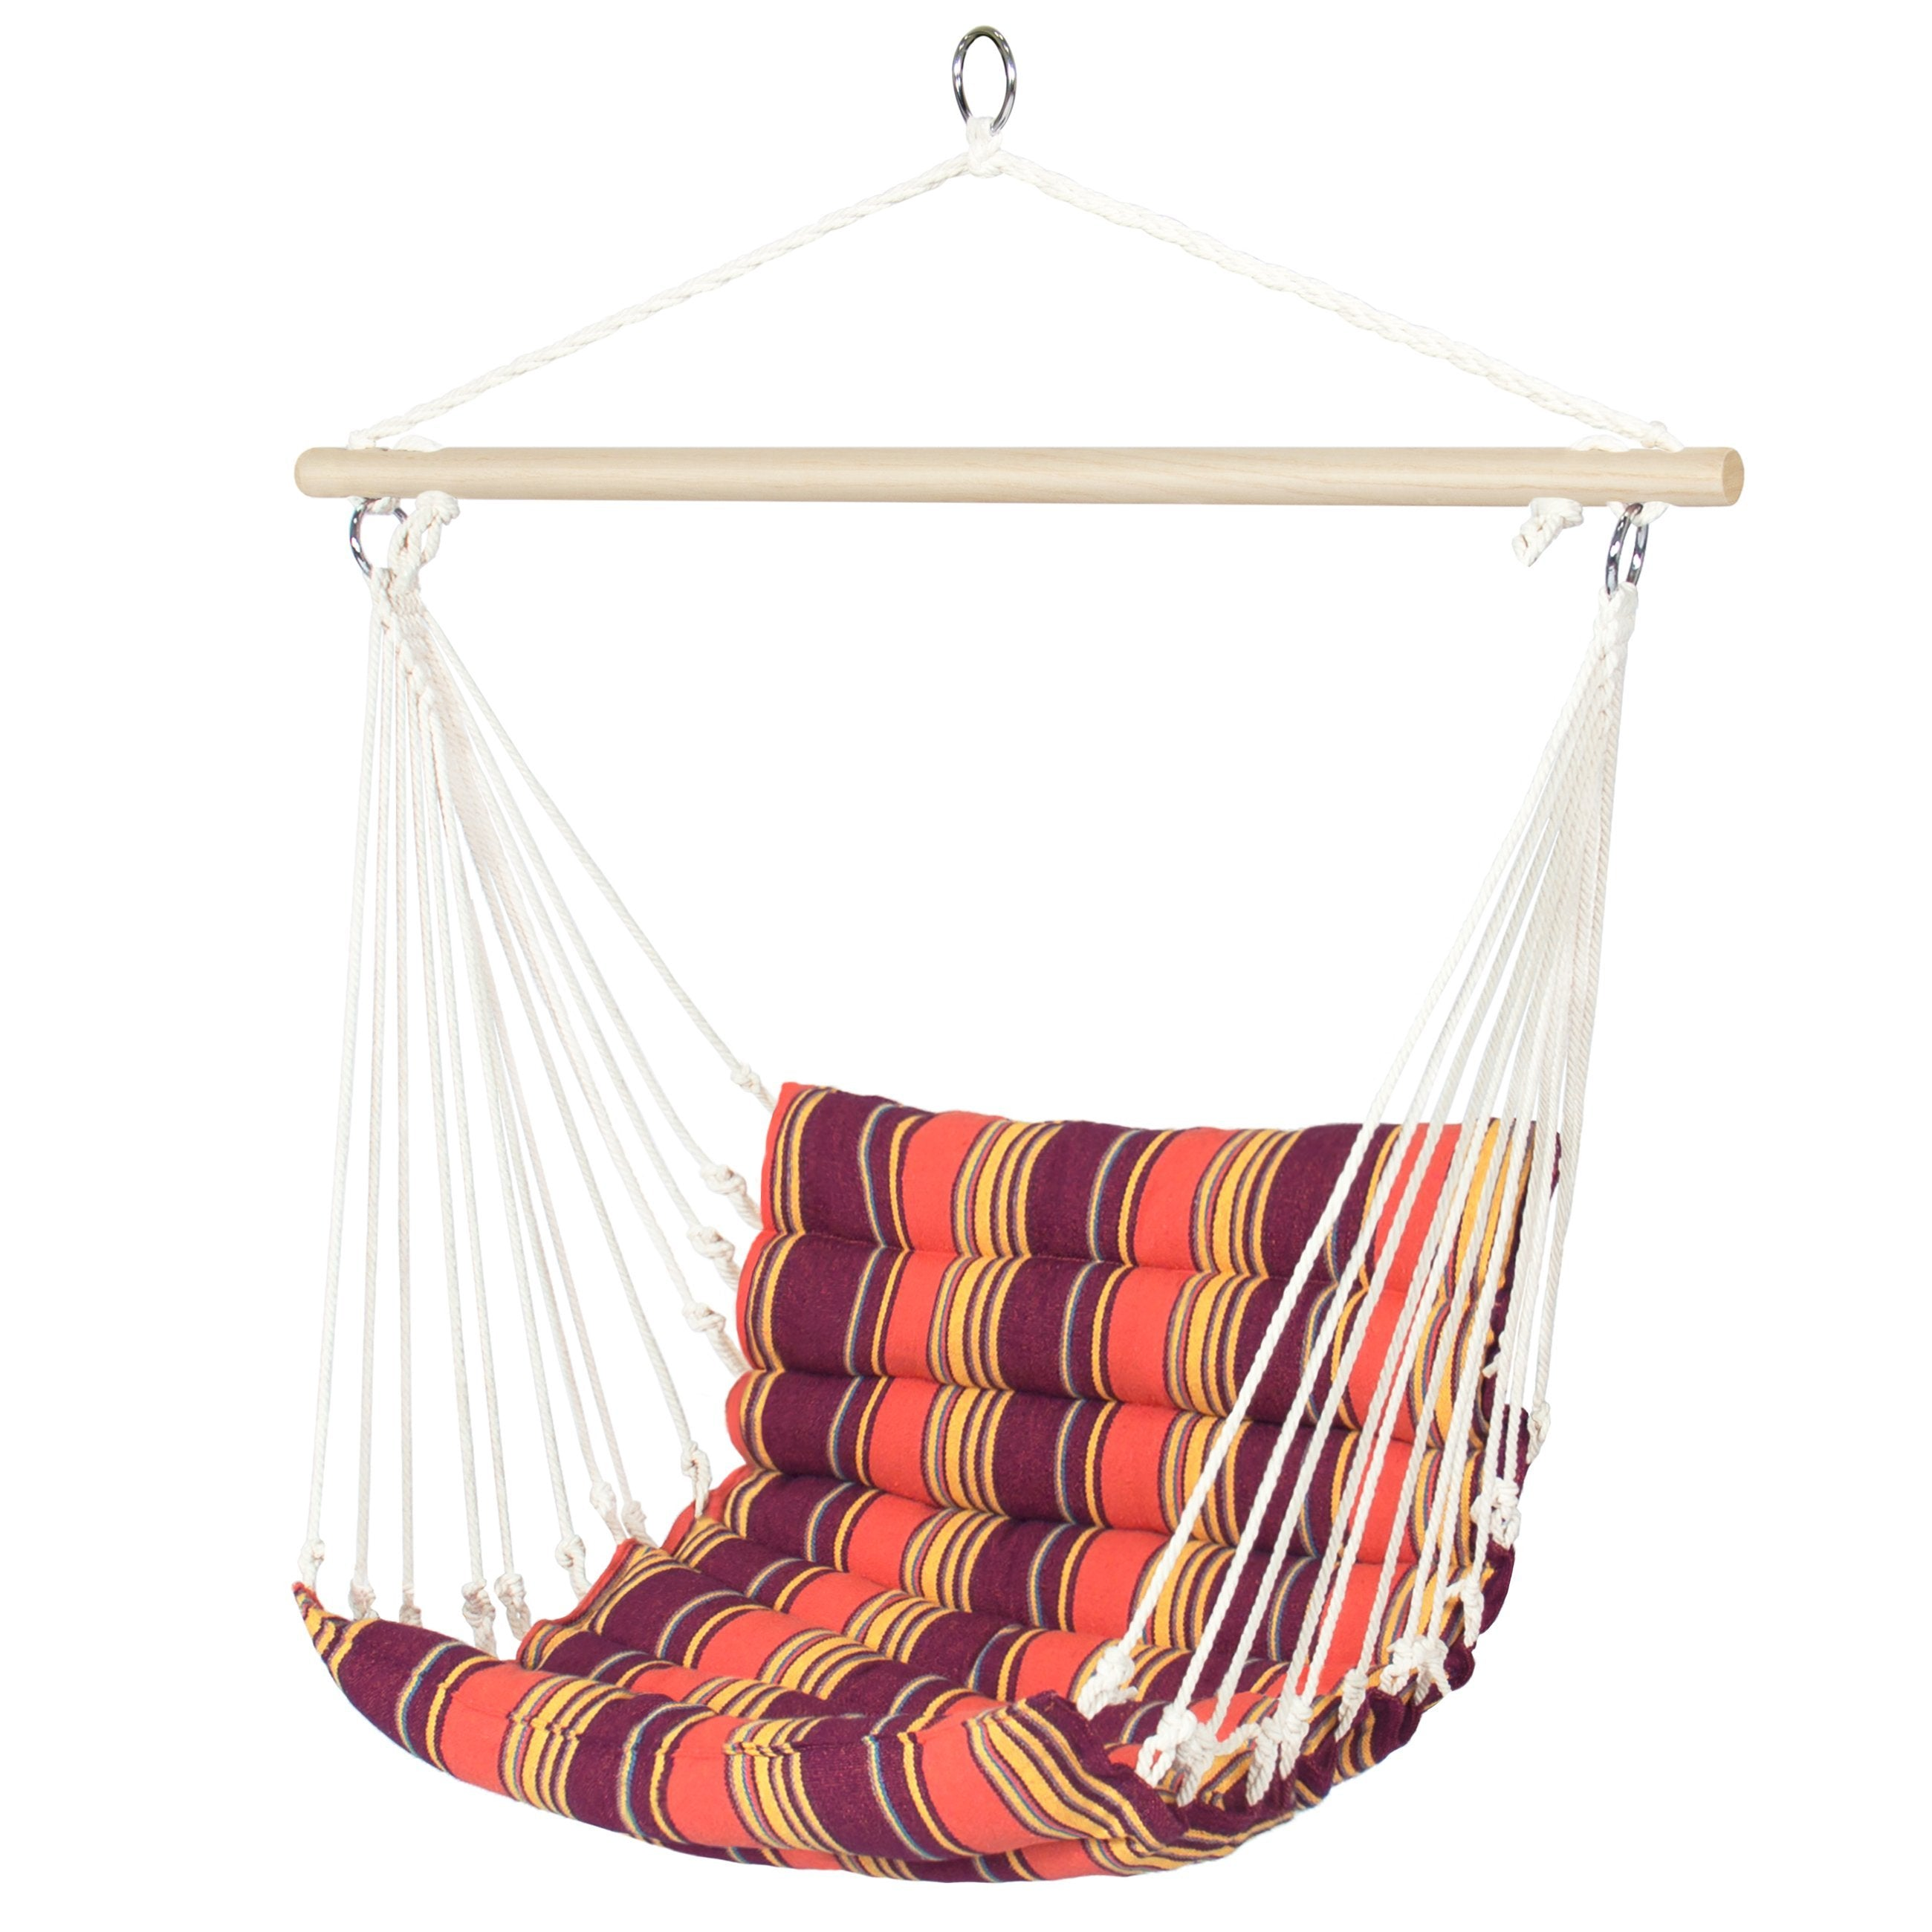 Padded Indoor/Outdoor Cotton Hammock Chair w/ 40in Spreader Bar